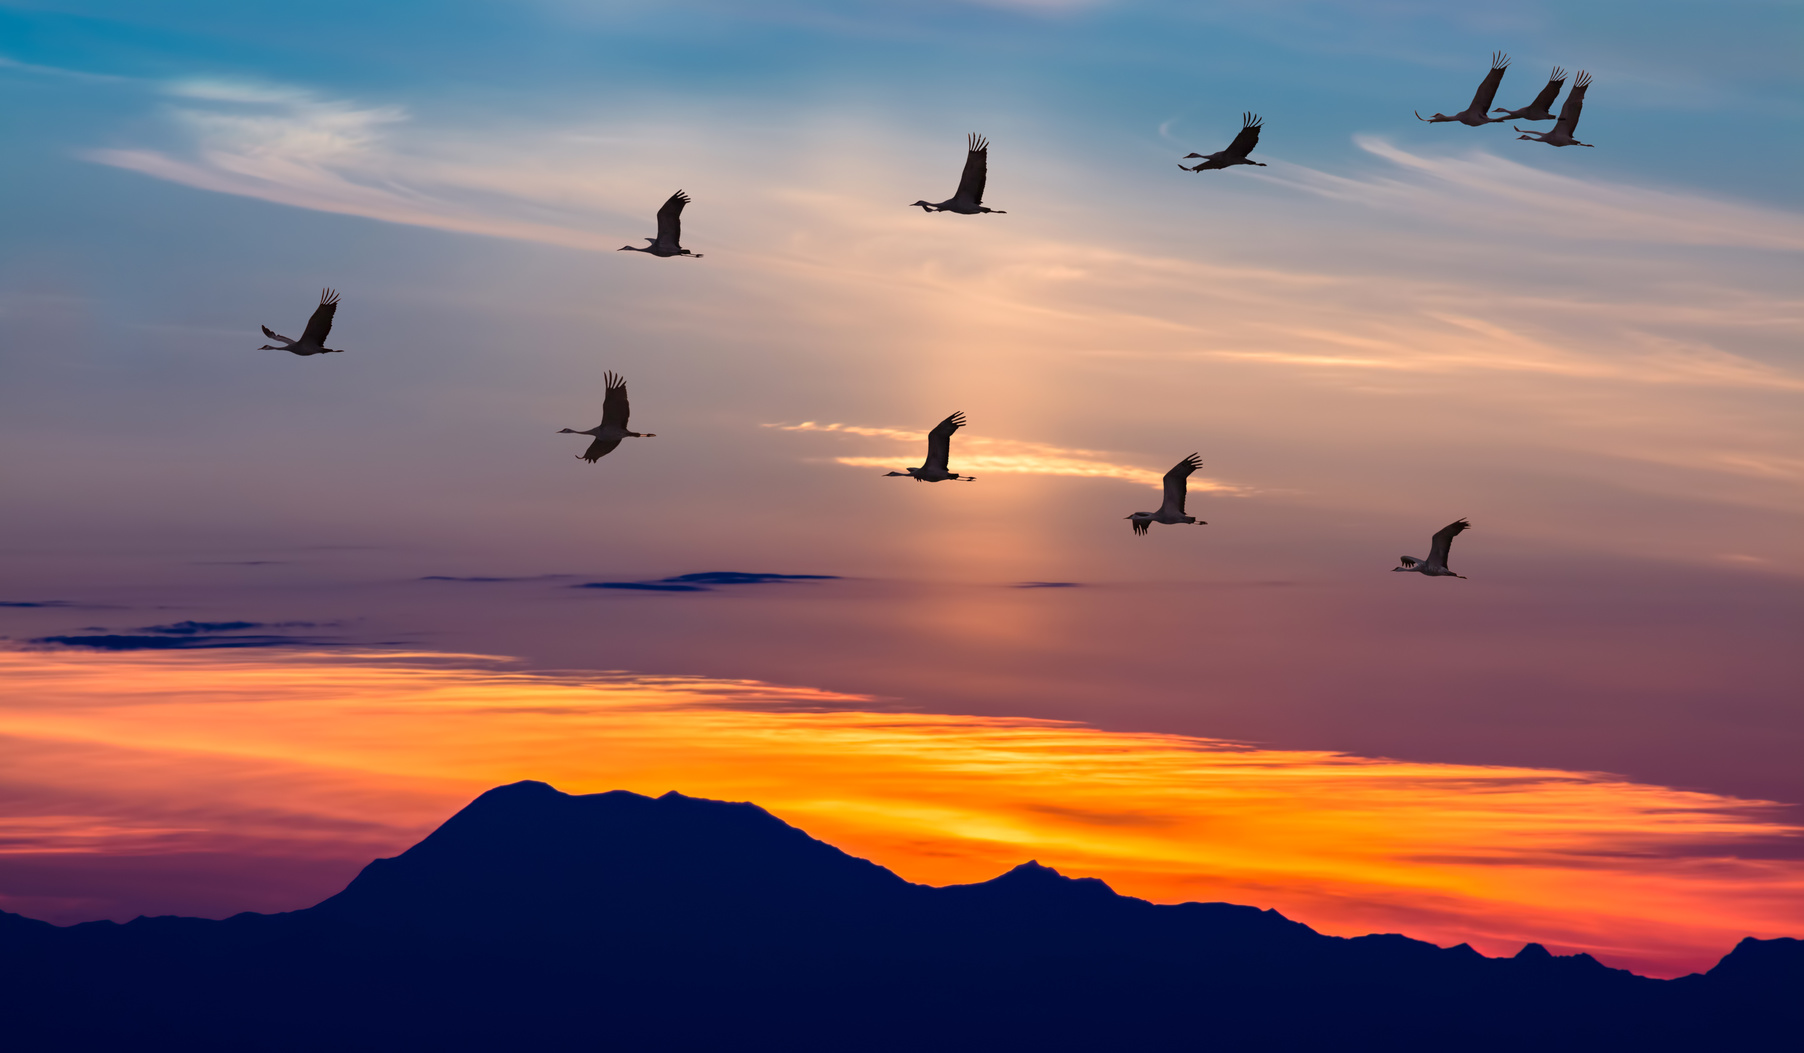 Sandhill Cranes in Flight at Sunrise Panoramic View (Photo: farmersalmanac.com)